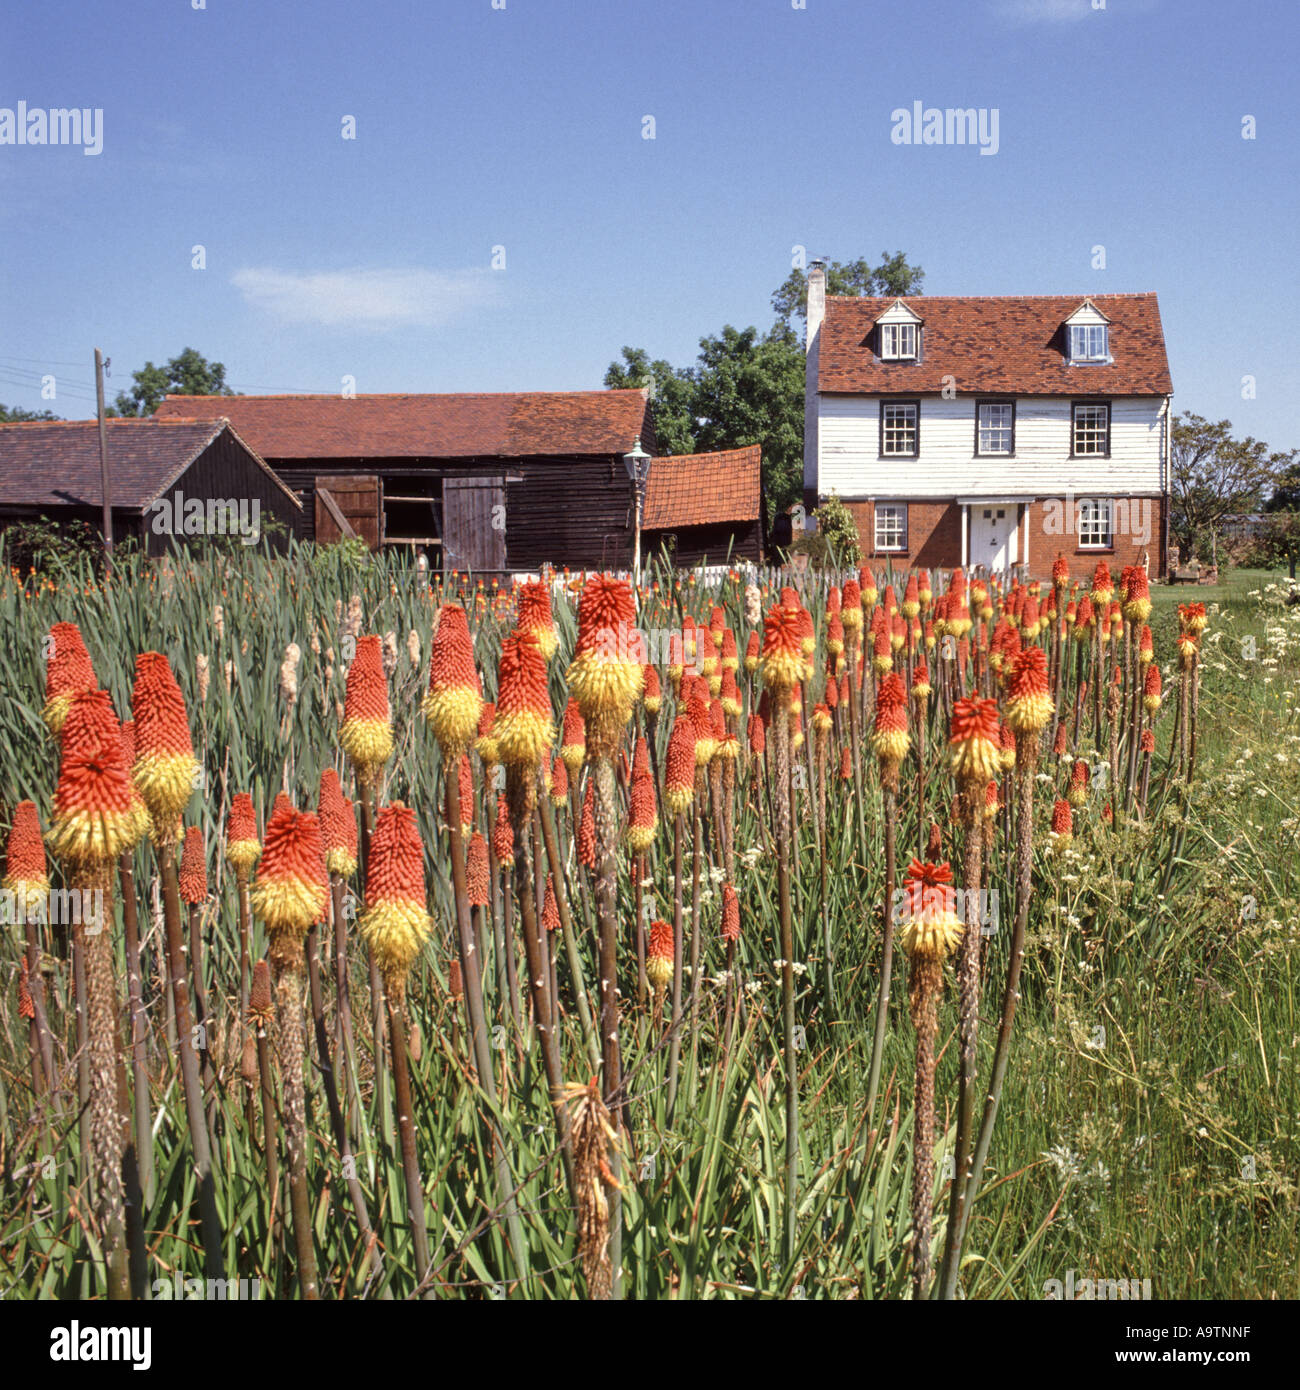 Essex country cottage and adjacent barn with display of red hot pokers in flower - Stock Image